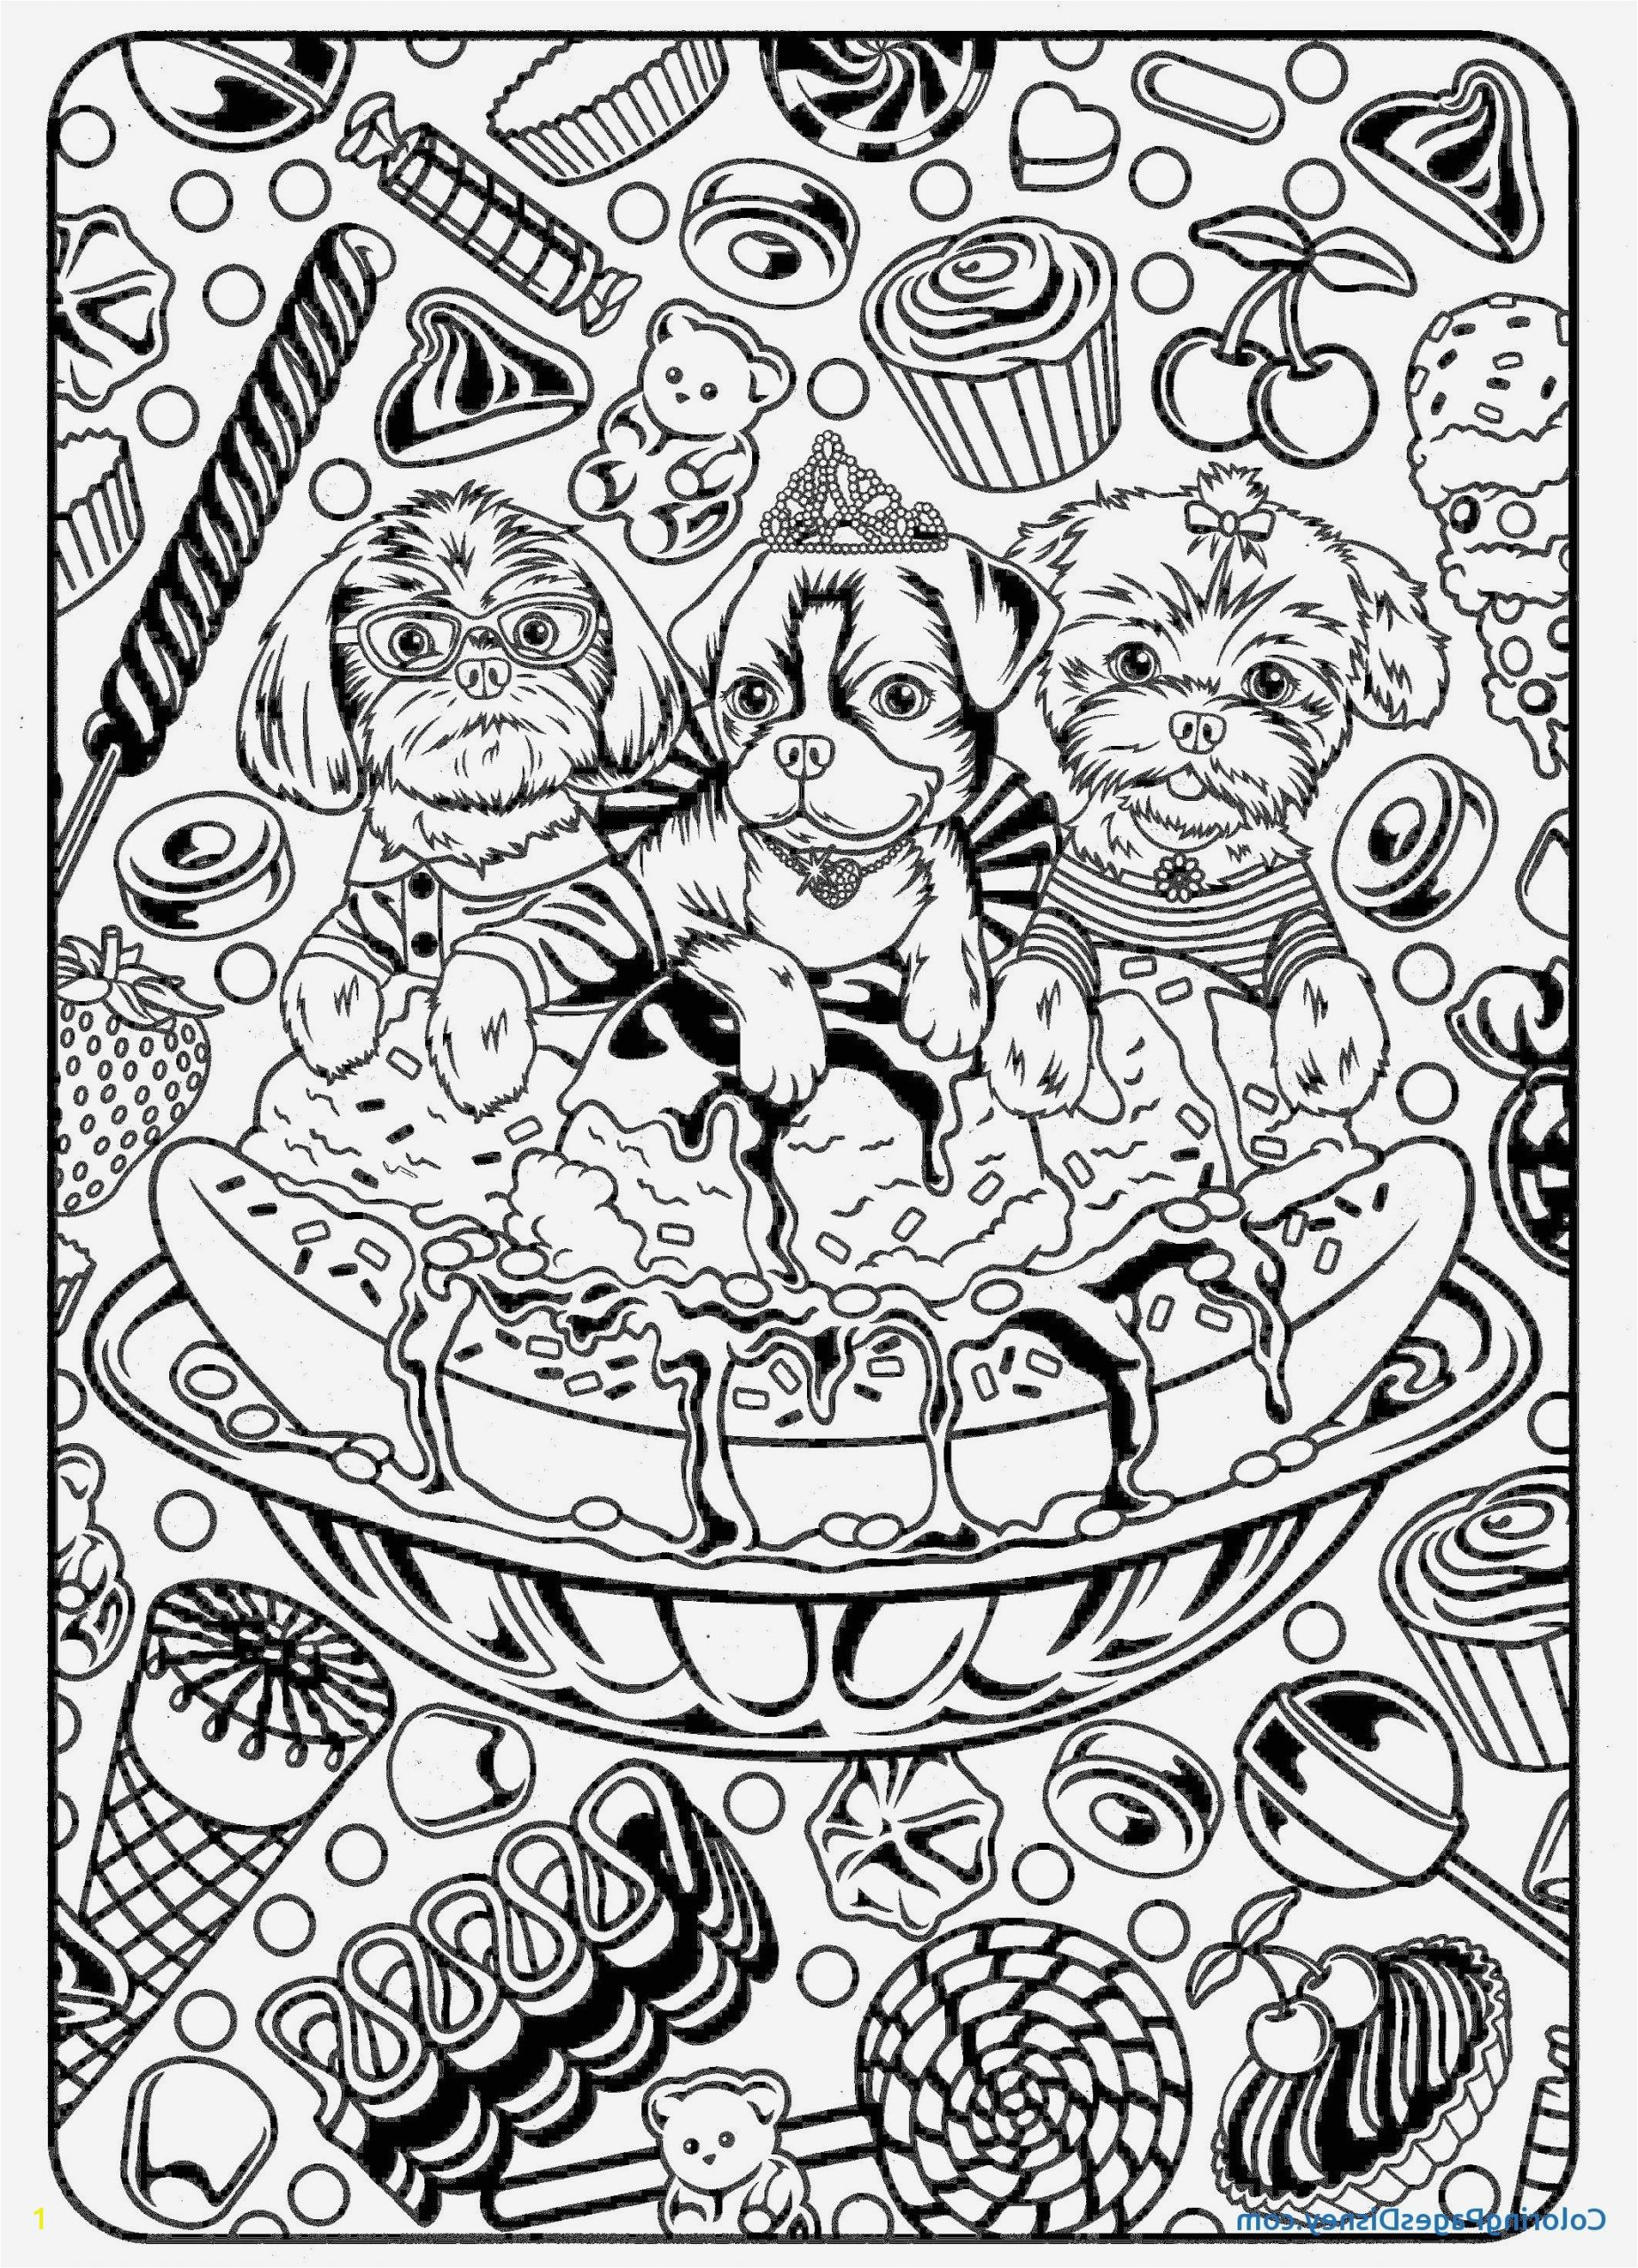 rangoli coloring page new image best little shop horrors coloring pages nicho of rangoli coloring page